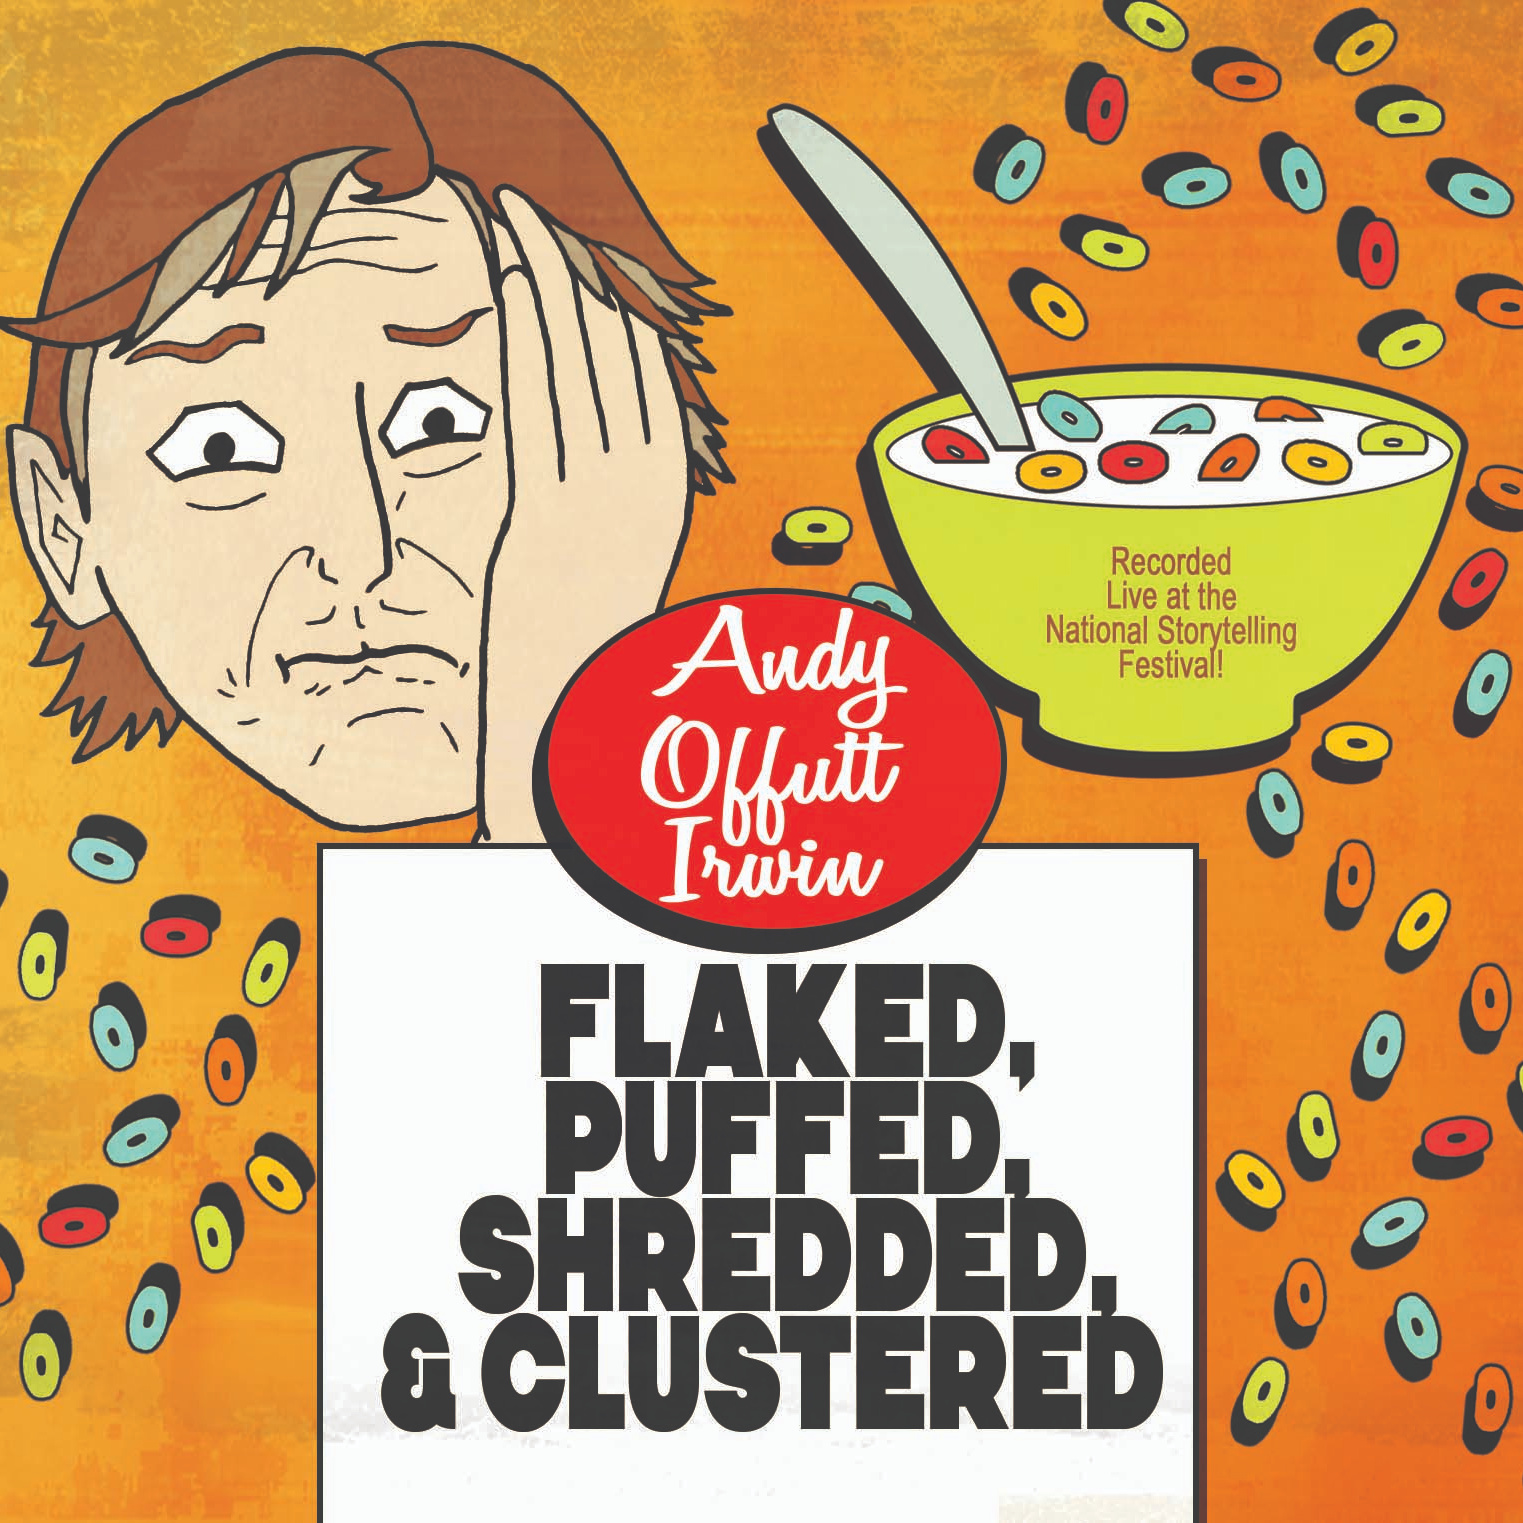 Flaked, Puffed, Shredded, & Clustered cd